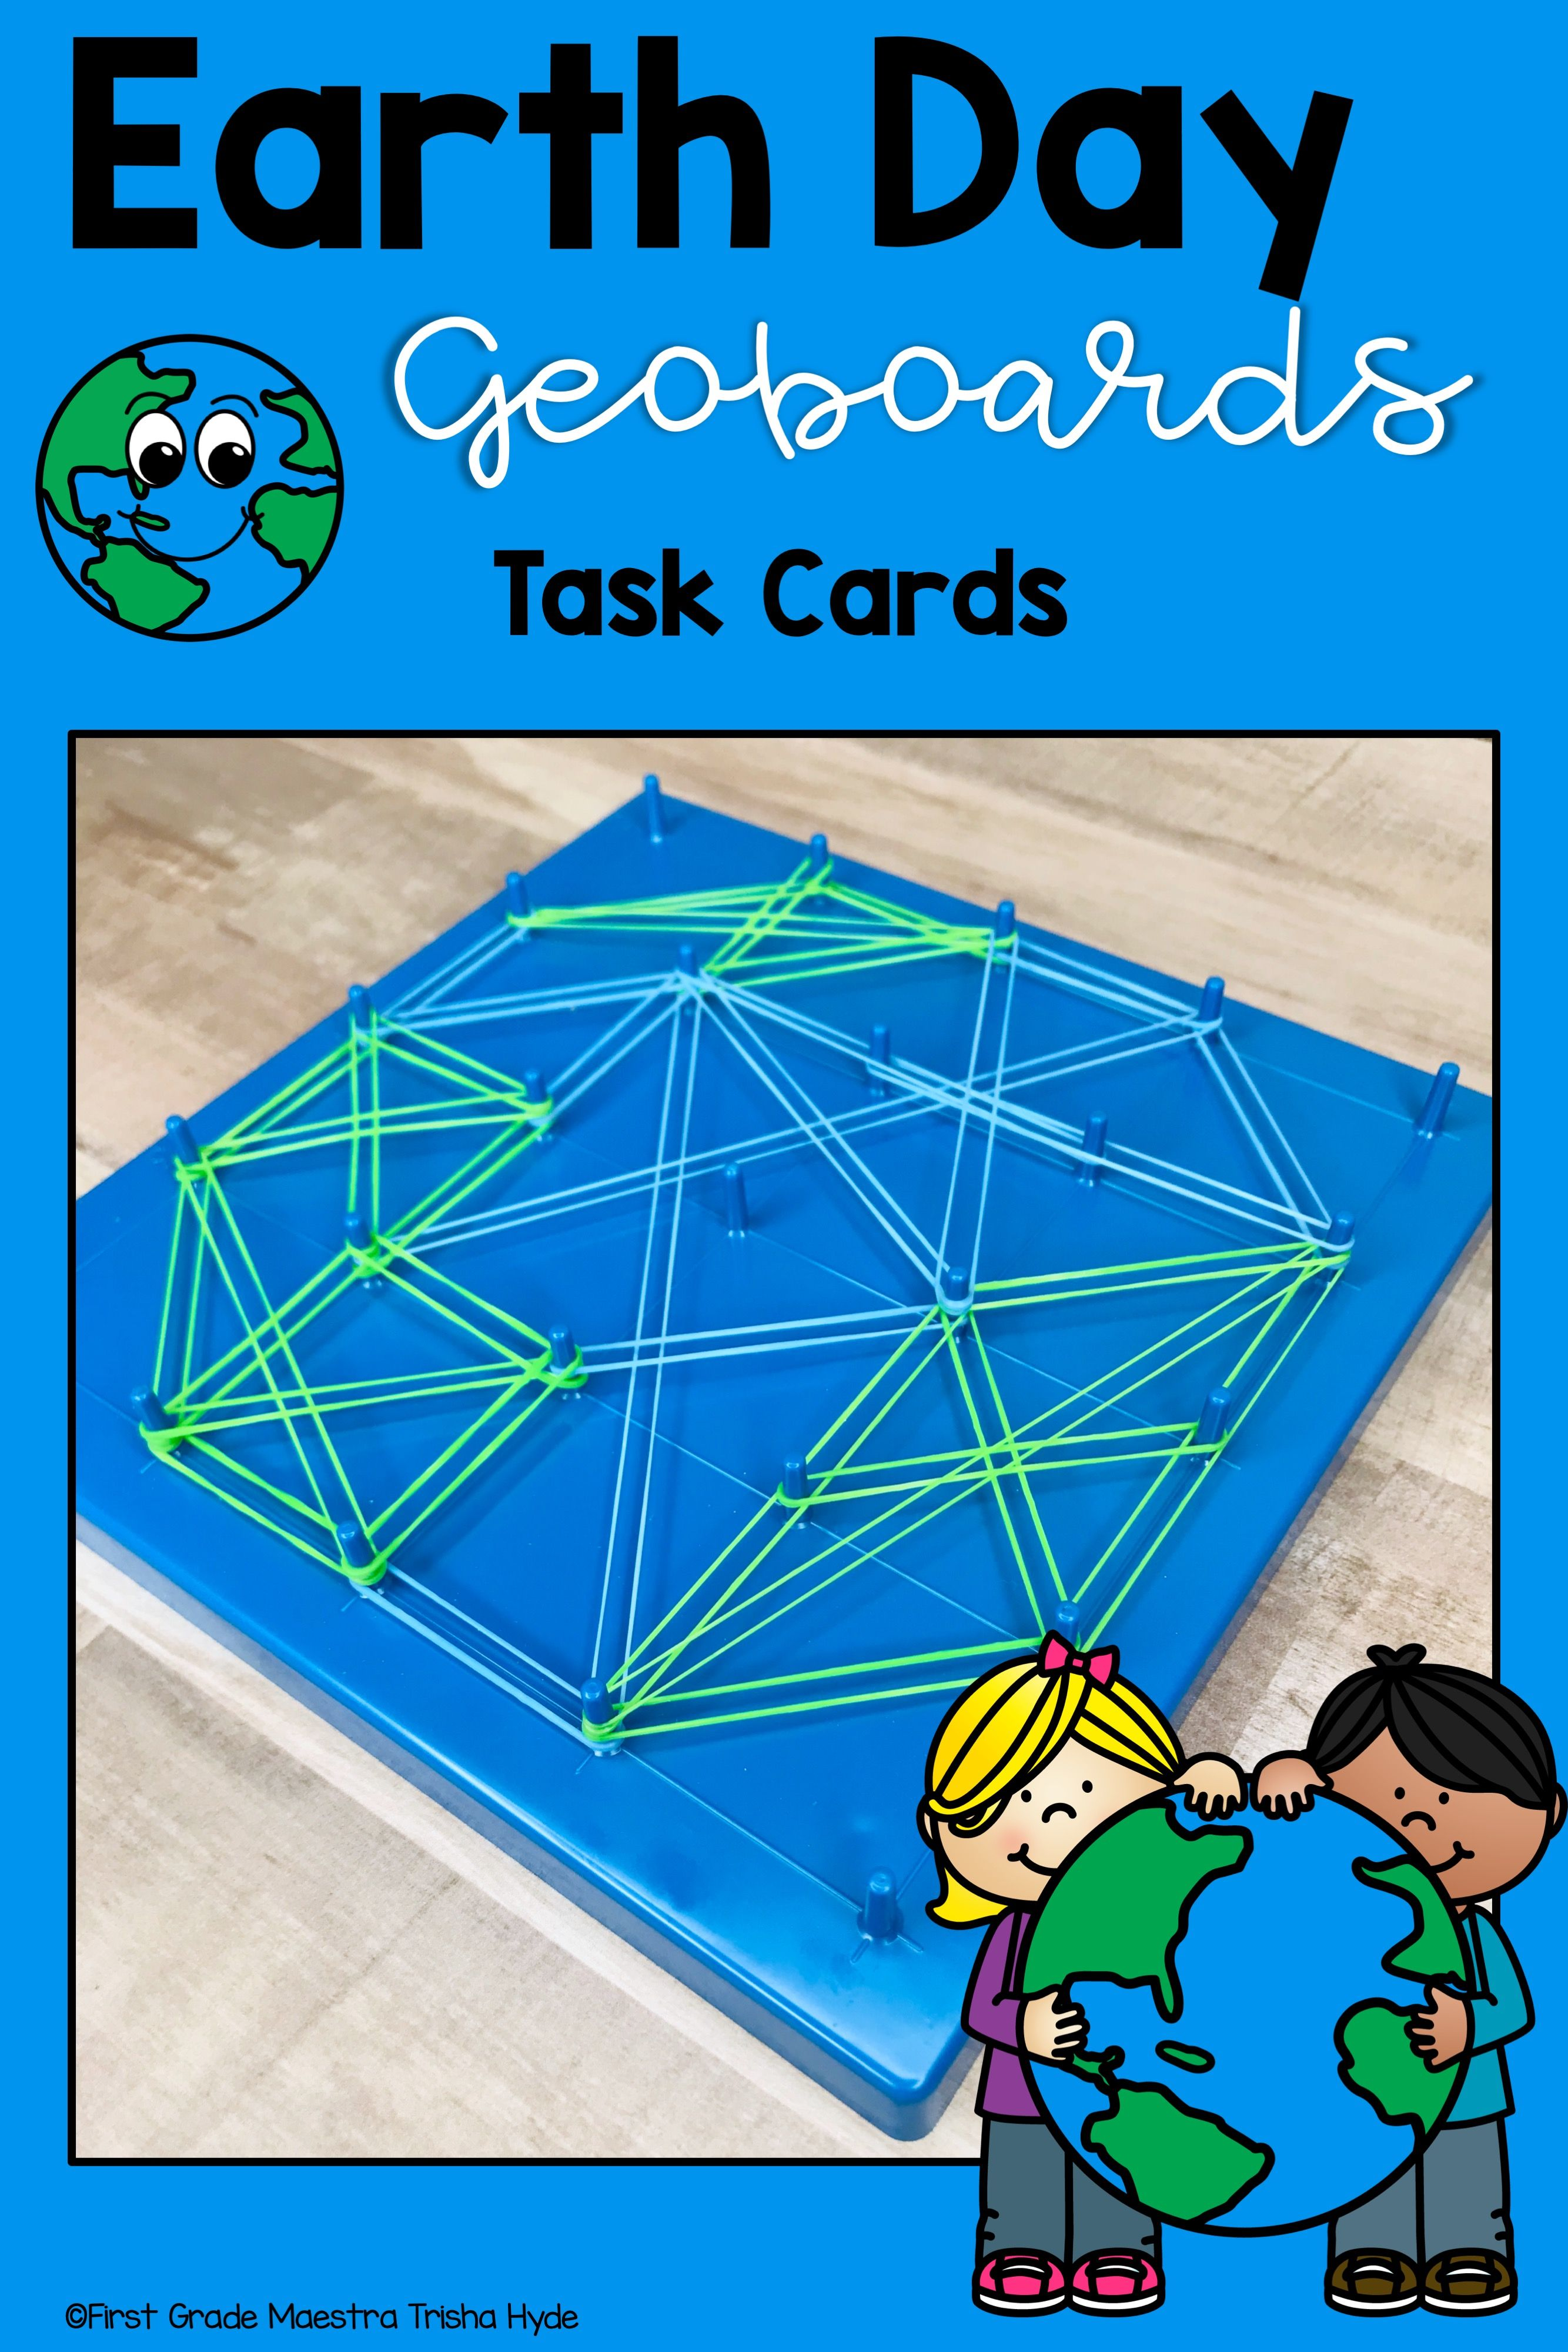 Earth Day Geoboard Task Cards